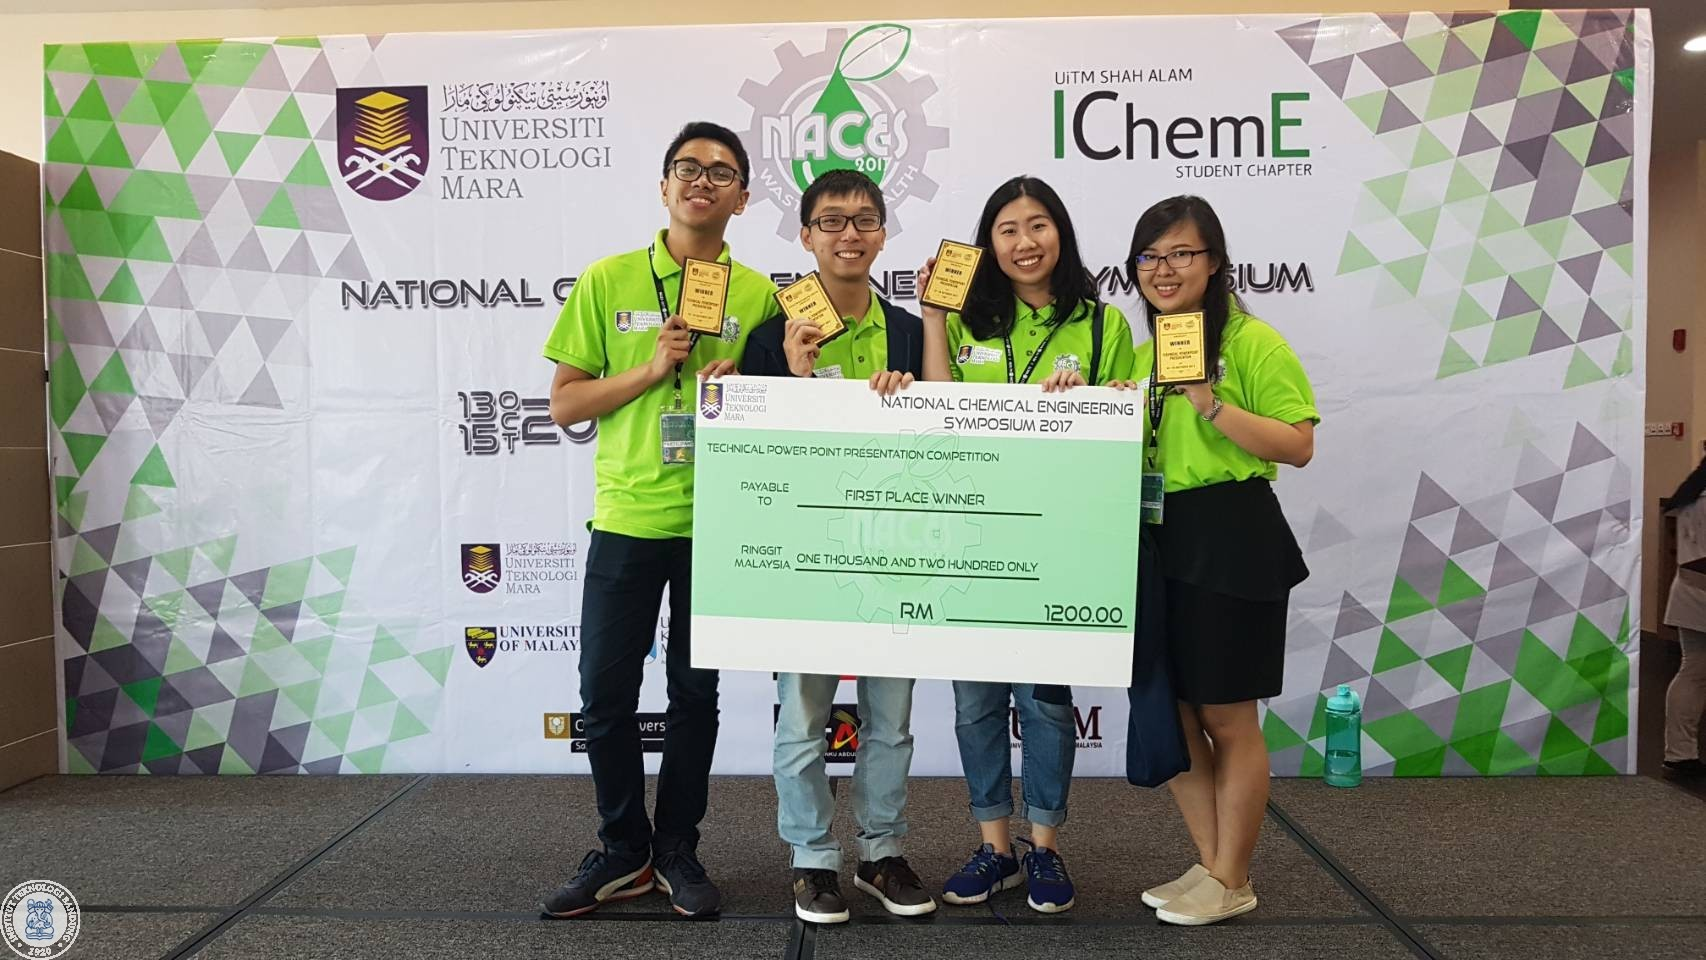 itb-defend-title-of-the-overall-winner-of-naces